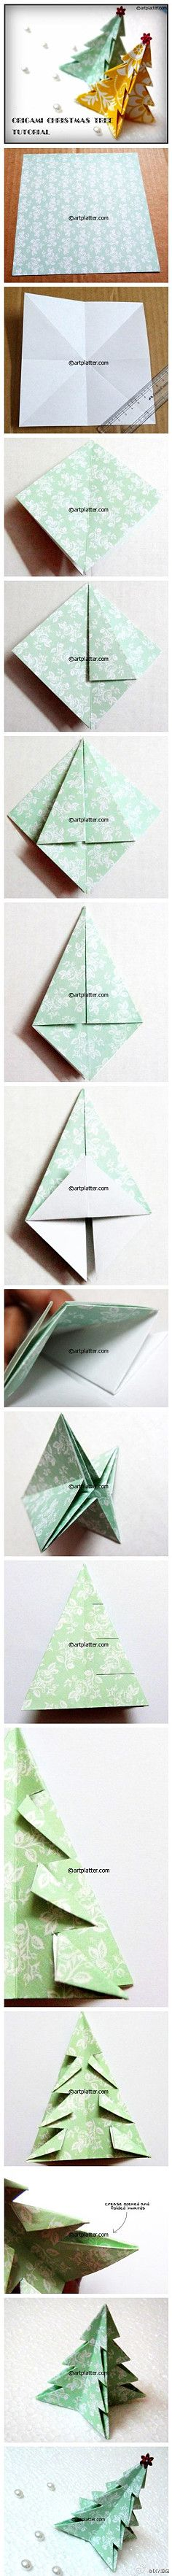 # # Hands folded origami Christmas tree tutorial friends ~ ~ ~ (from a few minutes ...